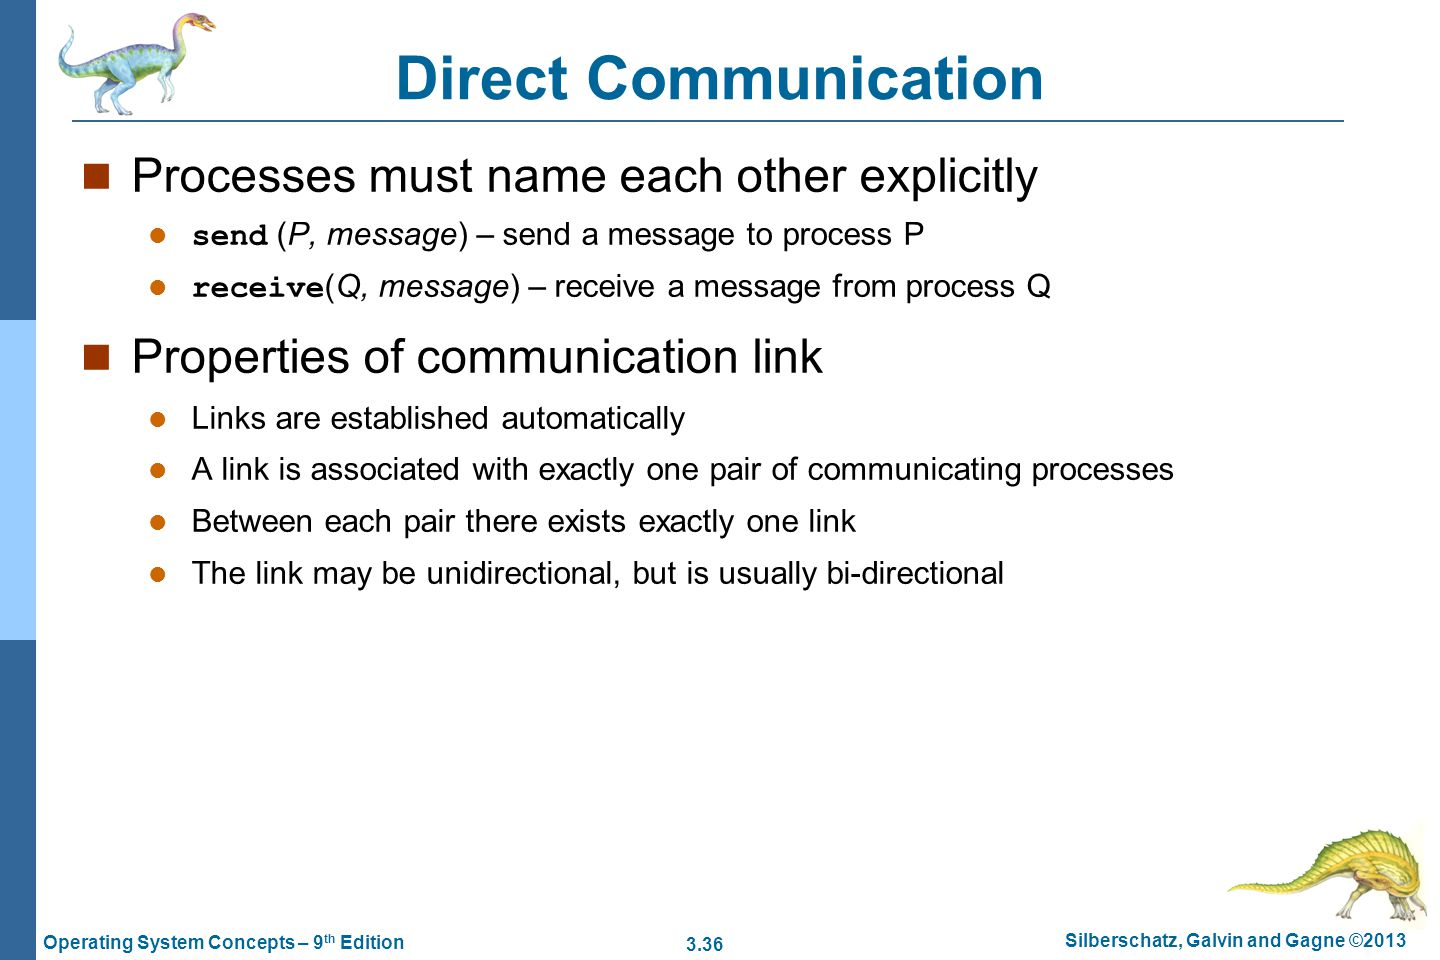 3.36 Silberschatz, Galvin and Gagne ©2013 Operating System Concepts – 9 th Edition Direct Communication Processes must name each other explicitly send